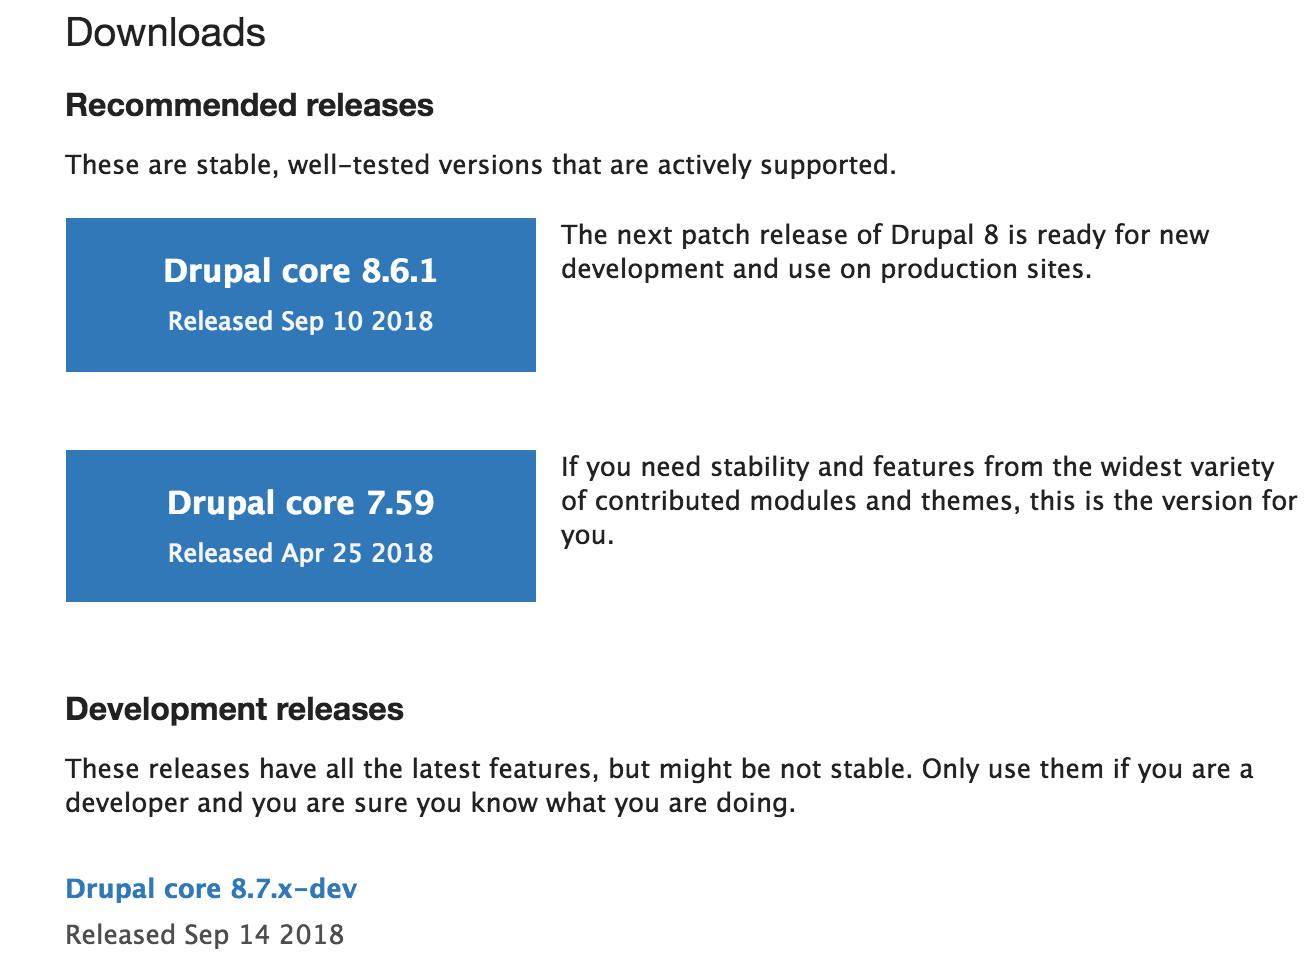 Updating drupal 7 x to newer minor version